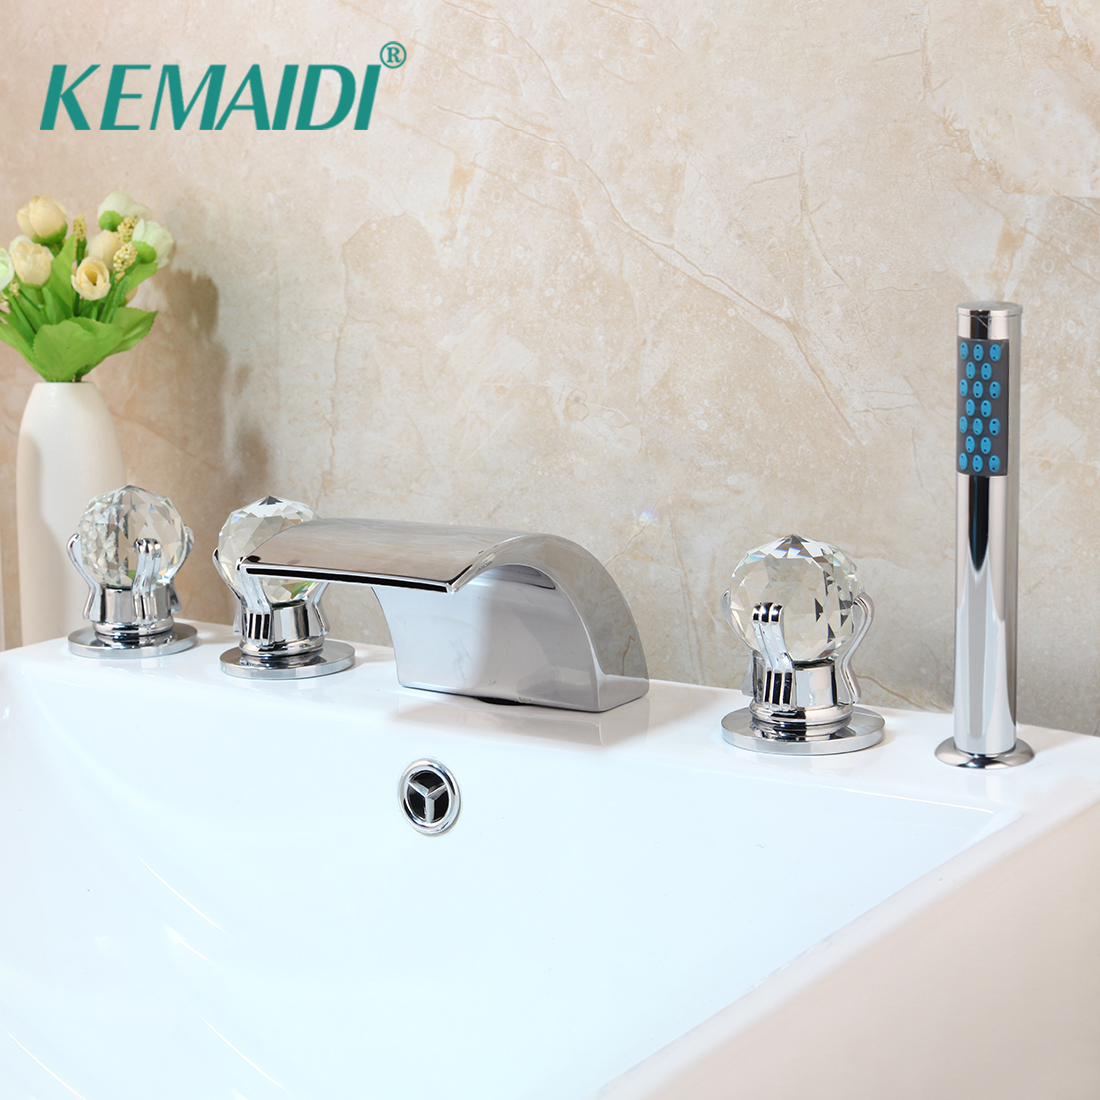 KEMAIDI Deck Mounted 5 Pcs Set Faucet Waterfall Spout With Hand Sprayer Bathroom Tub Faucet Bath Shower Set